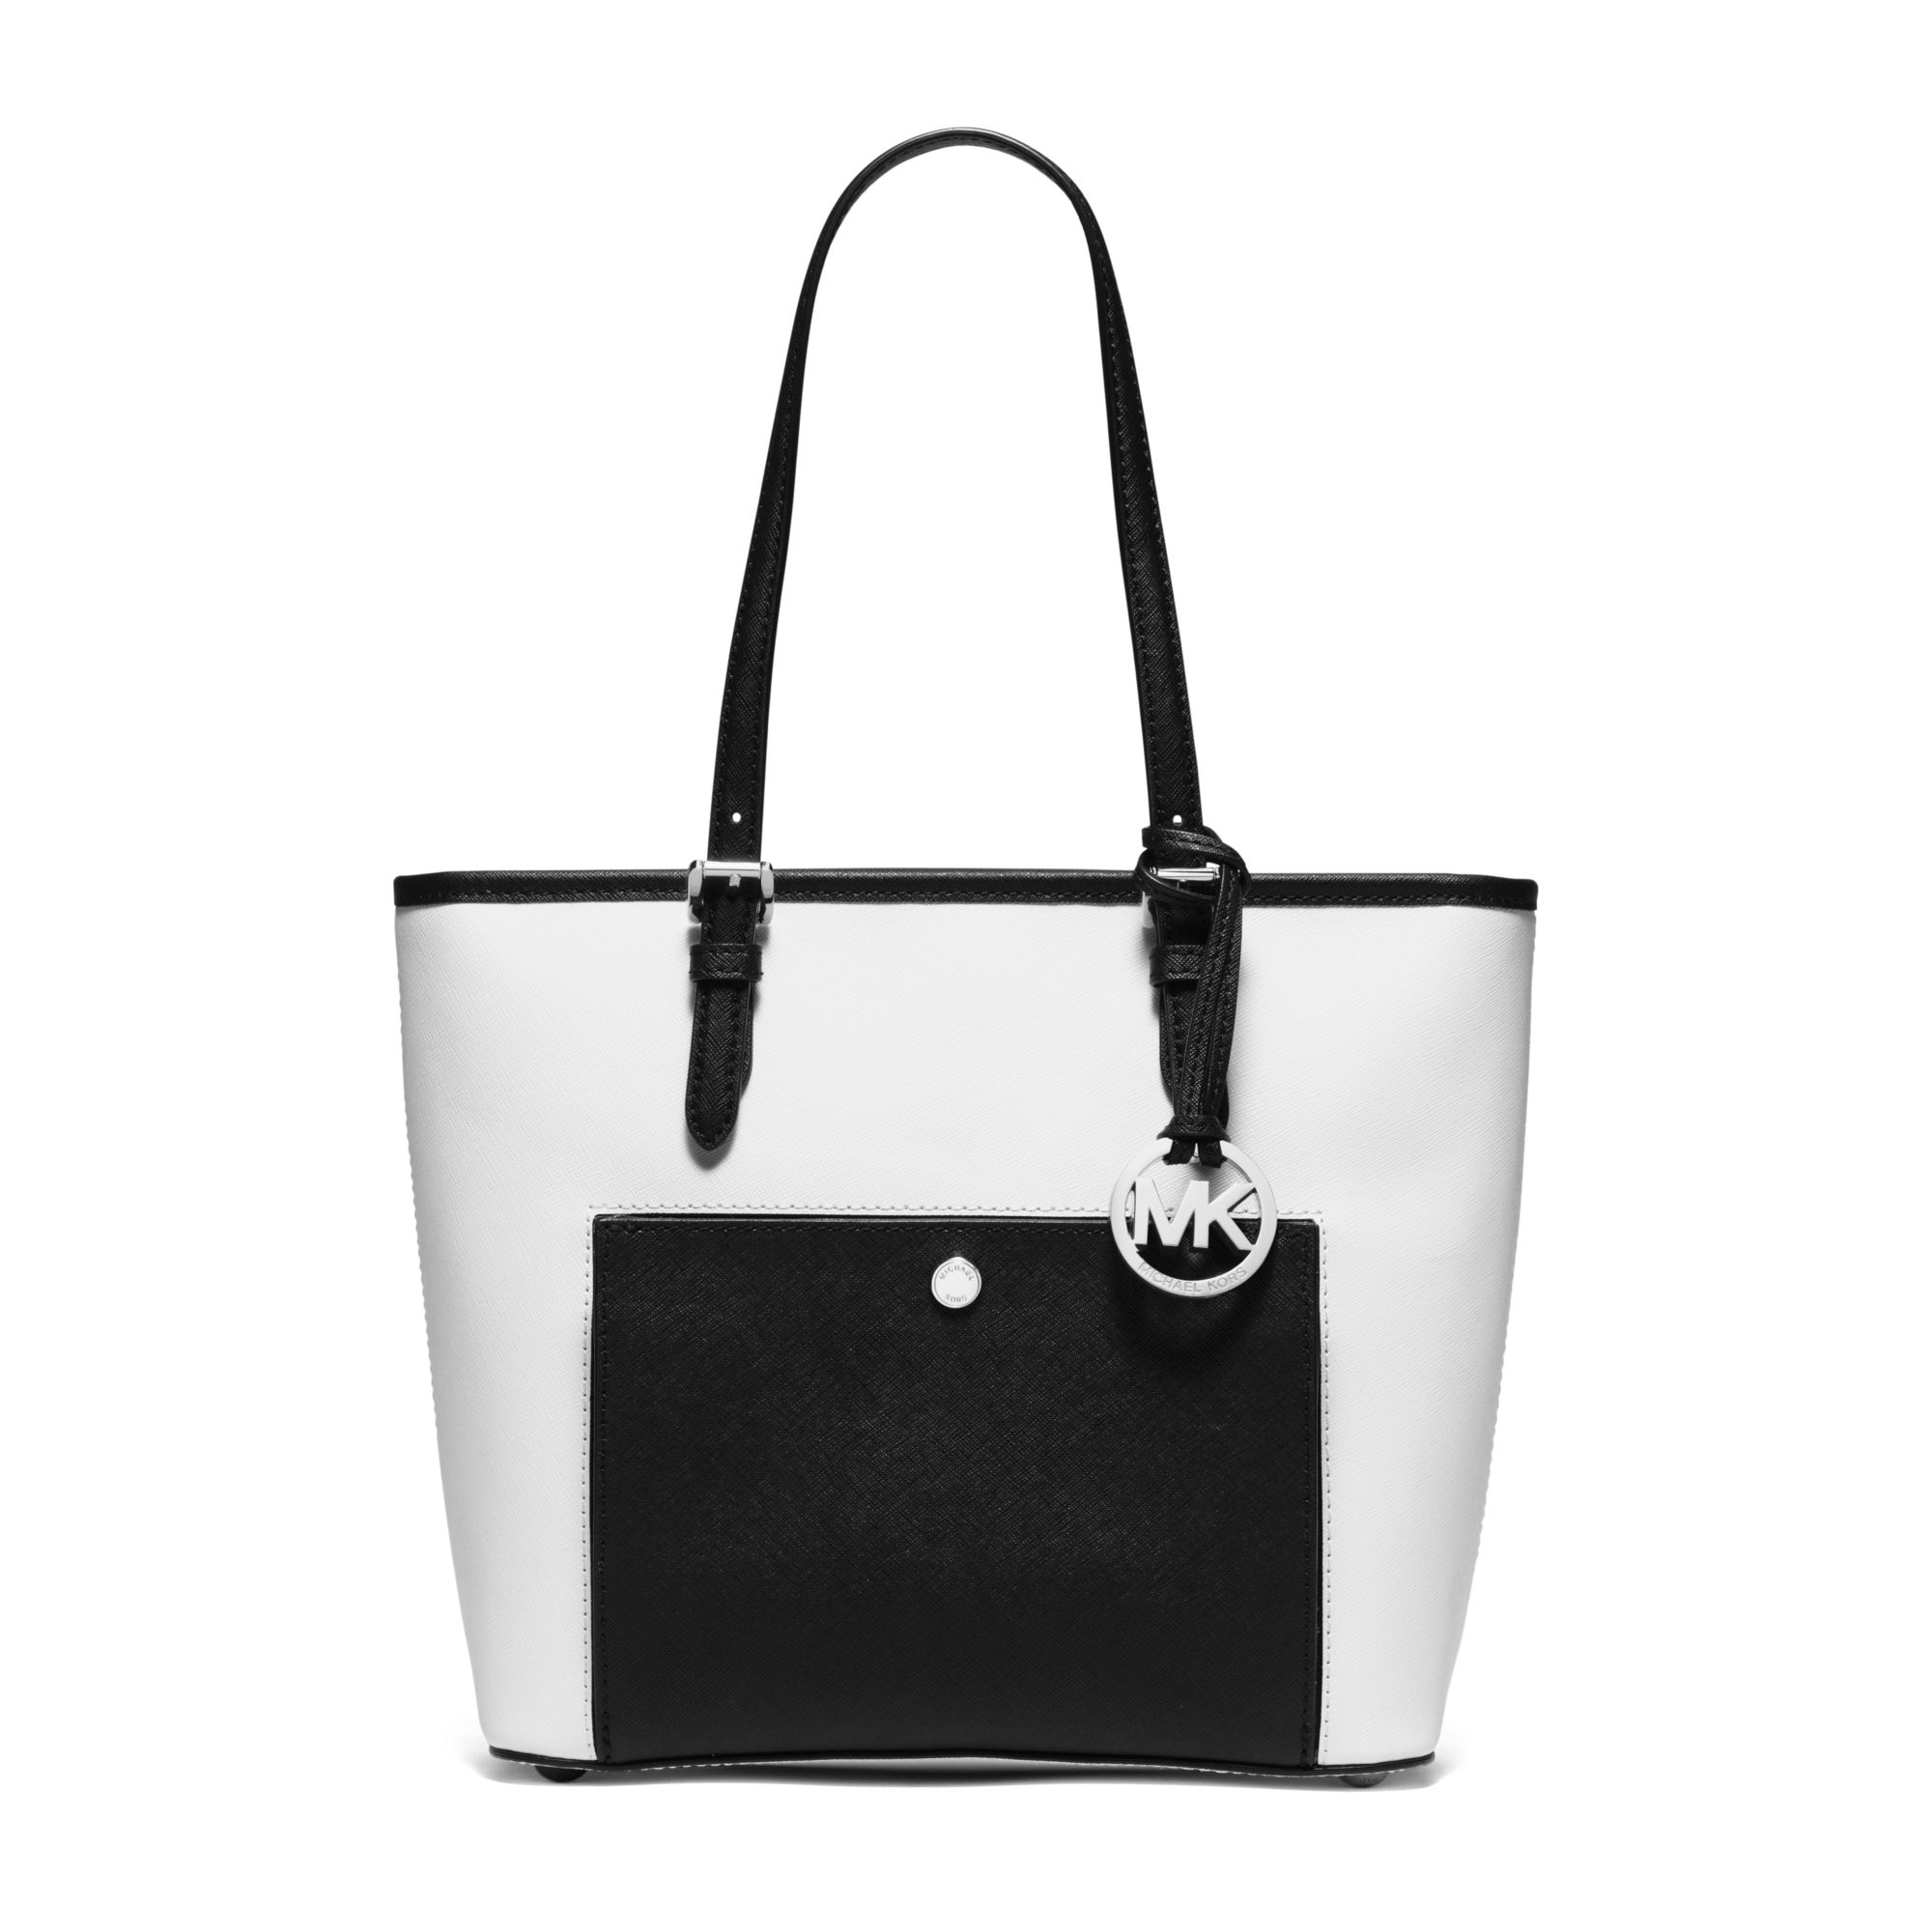 3d537a3f5735 Lyst - Michael Kors Jet Set Travel Medium Saffiano Leather Tote in White